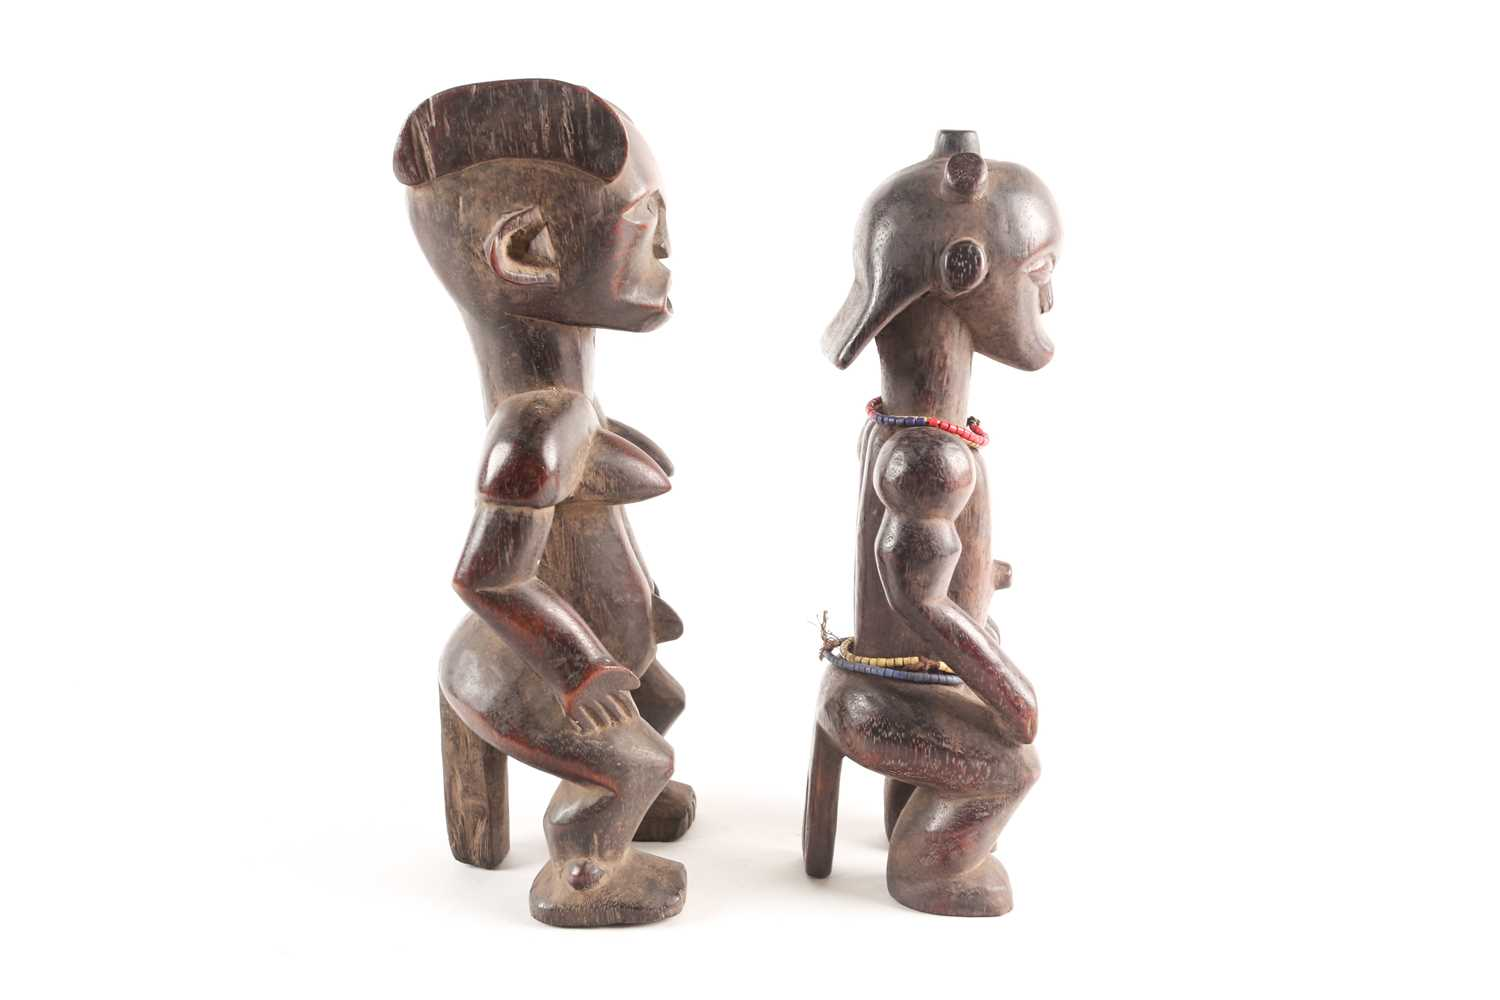 A Fang seated male figure, Gabon, with knotted hair swept out at the rear, seated with his hands - Image 4 of 6